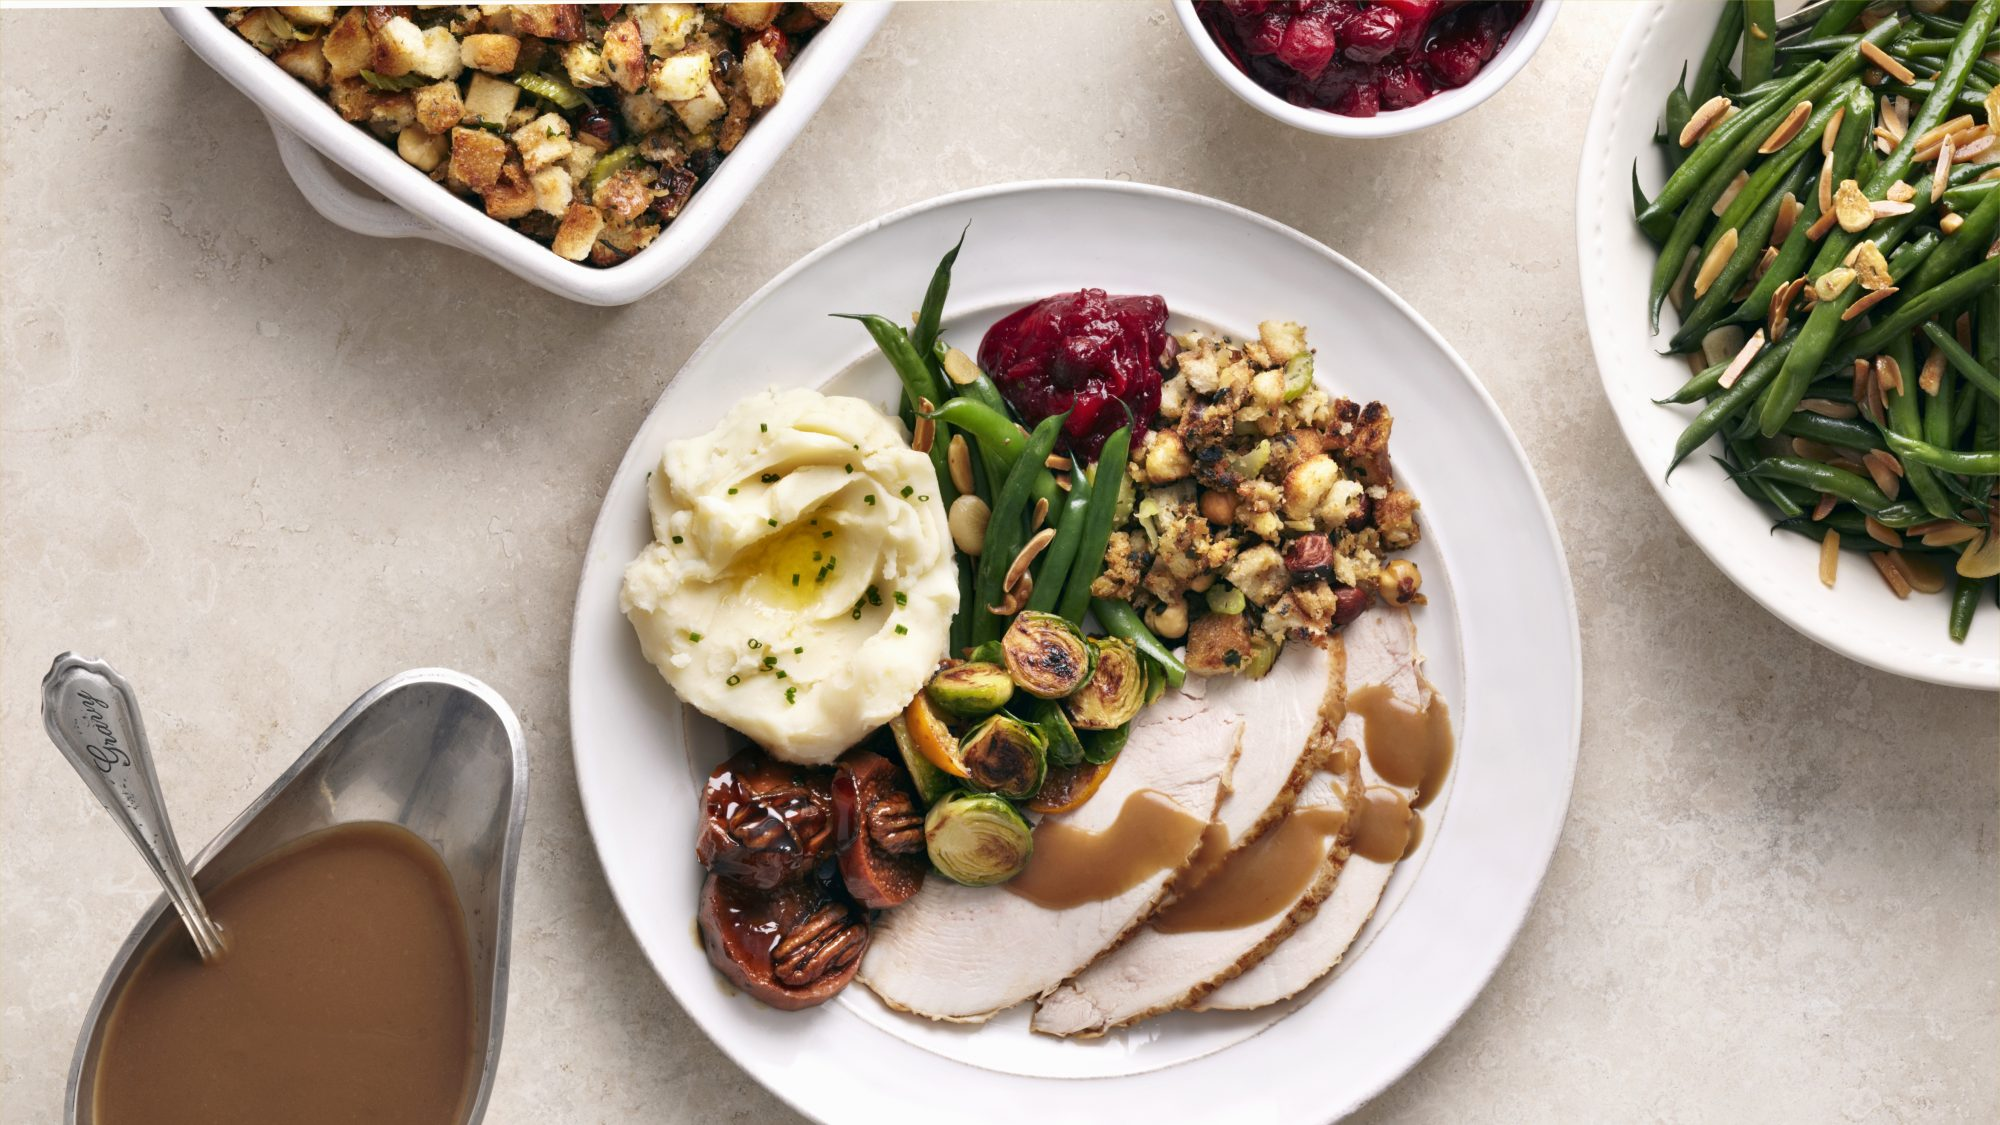 thanksgiving-food-safety-tips: Thanksgiving meal